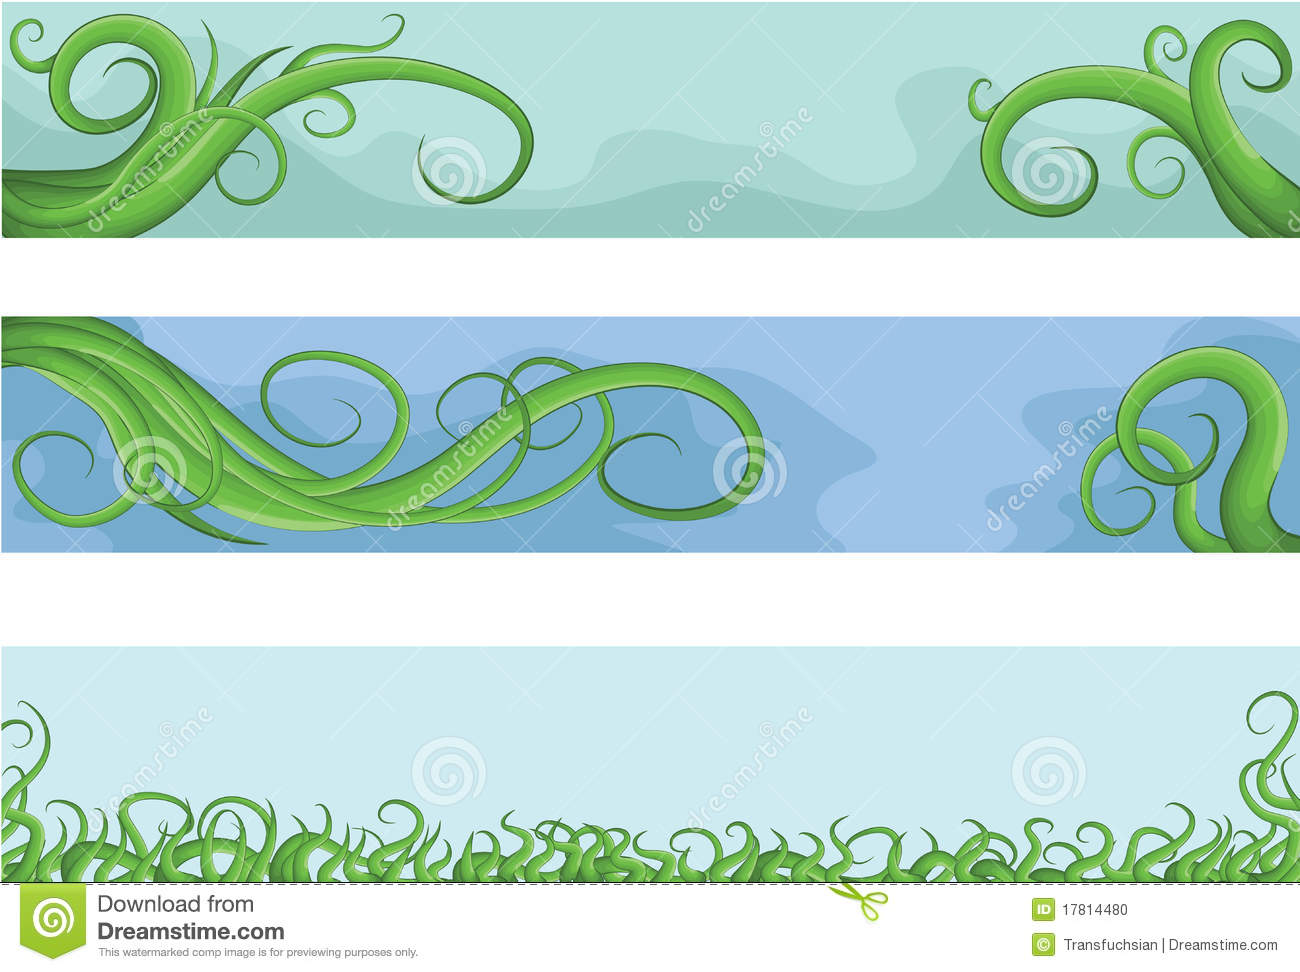 Hand Drawn Illustrated Jumbled Vine Banners Stock Photo. Beautiful Thing Signs Of Stroke. Ulm Logo. Adventure Time Decals. Promotional Gift Banners. Pez Lettering. Approved Fda Stickers. Create Your Poster. Sat Signs